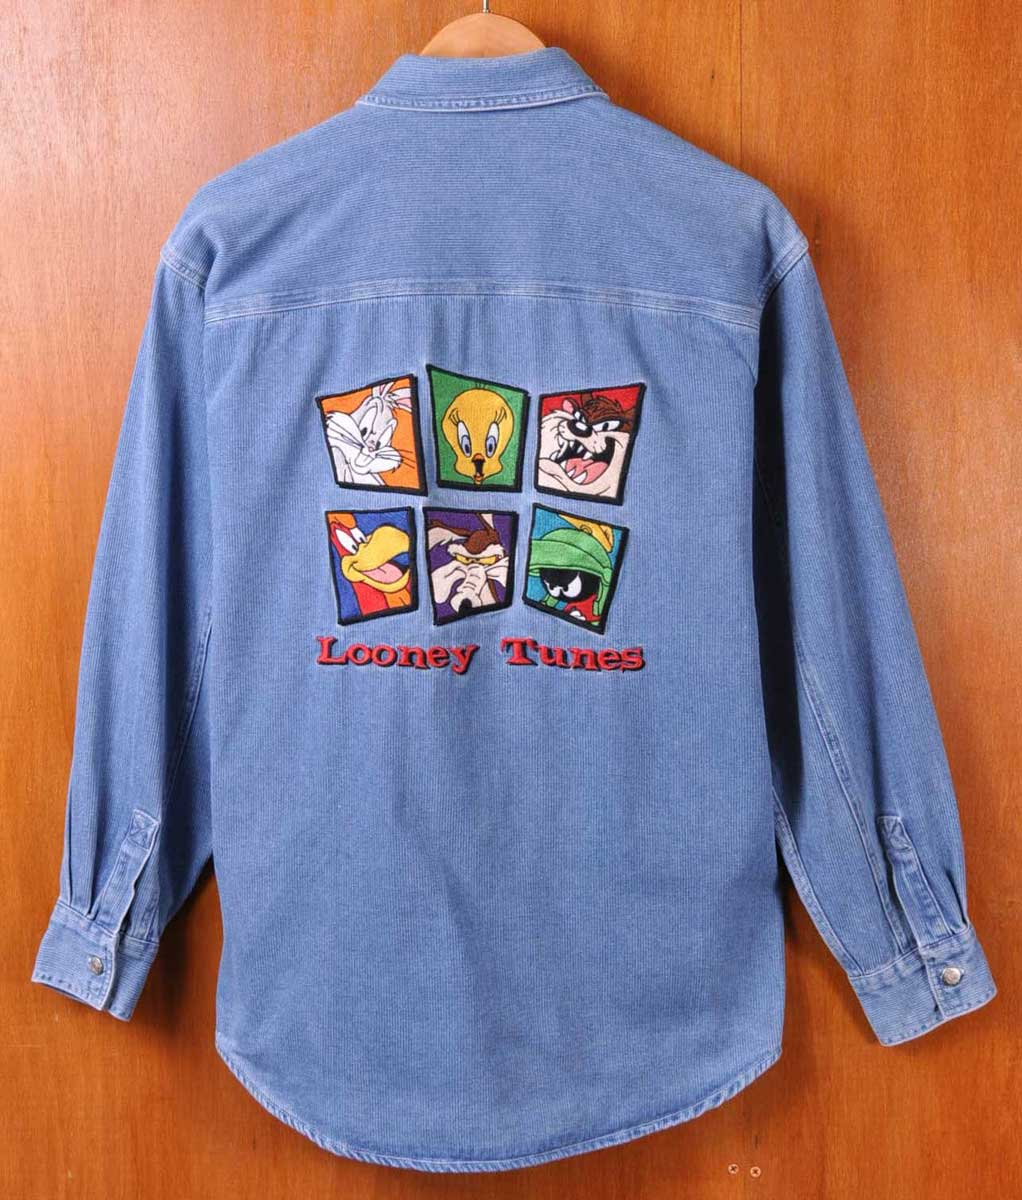 bc897a4073b8 Vintage 1996 / Warner Bros. Warner Bros. LOONEY TUNES Looney Tunes and  embroidered denim ...